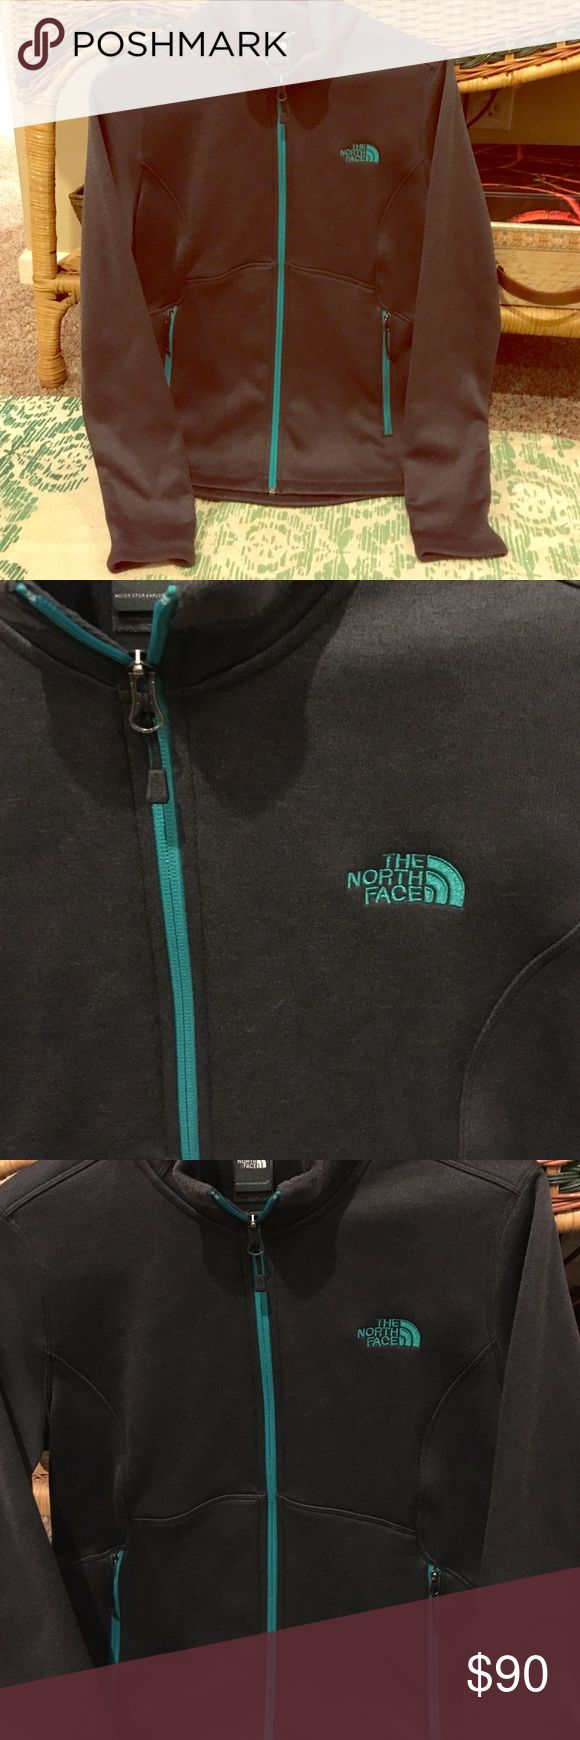 CHARCOAL/TEAL NORTH FACE ZIP-UP JACKET-- SALE!! Super warm and soft, charcoal North Face jacket. Teal logo and zippers. Perfect for casual days, traveling, working out, and when you're on the go. Size medium. Never worn. PRICE LOWERED! Trying to make room in my new closet :) The North Face Jackets & Coats Utility Jackets